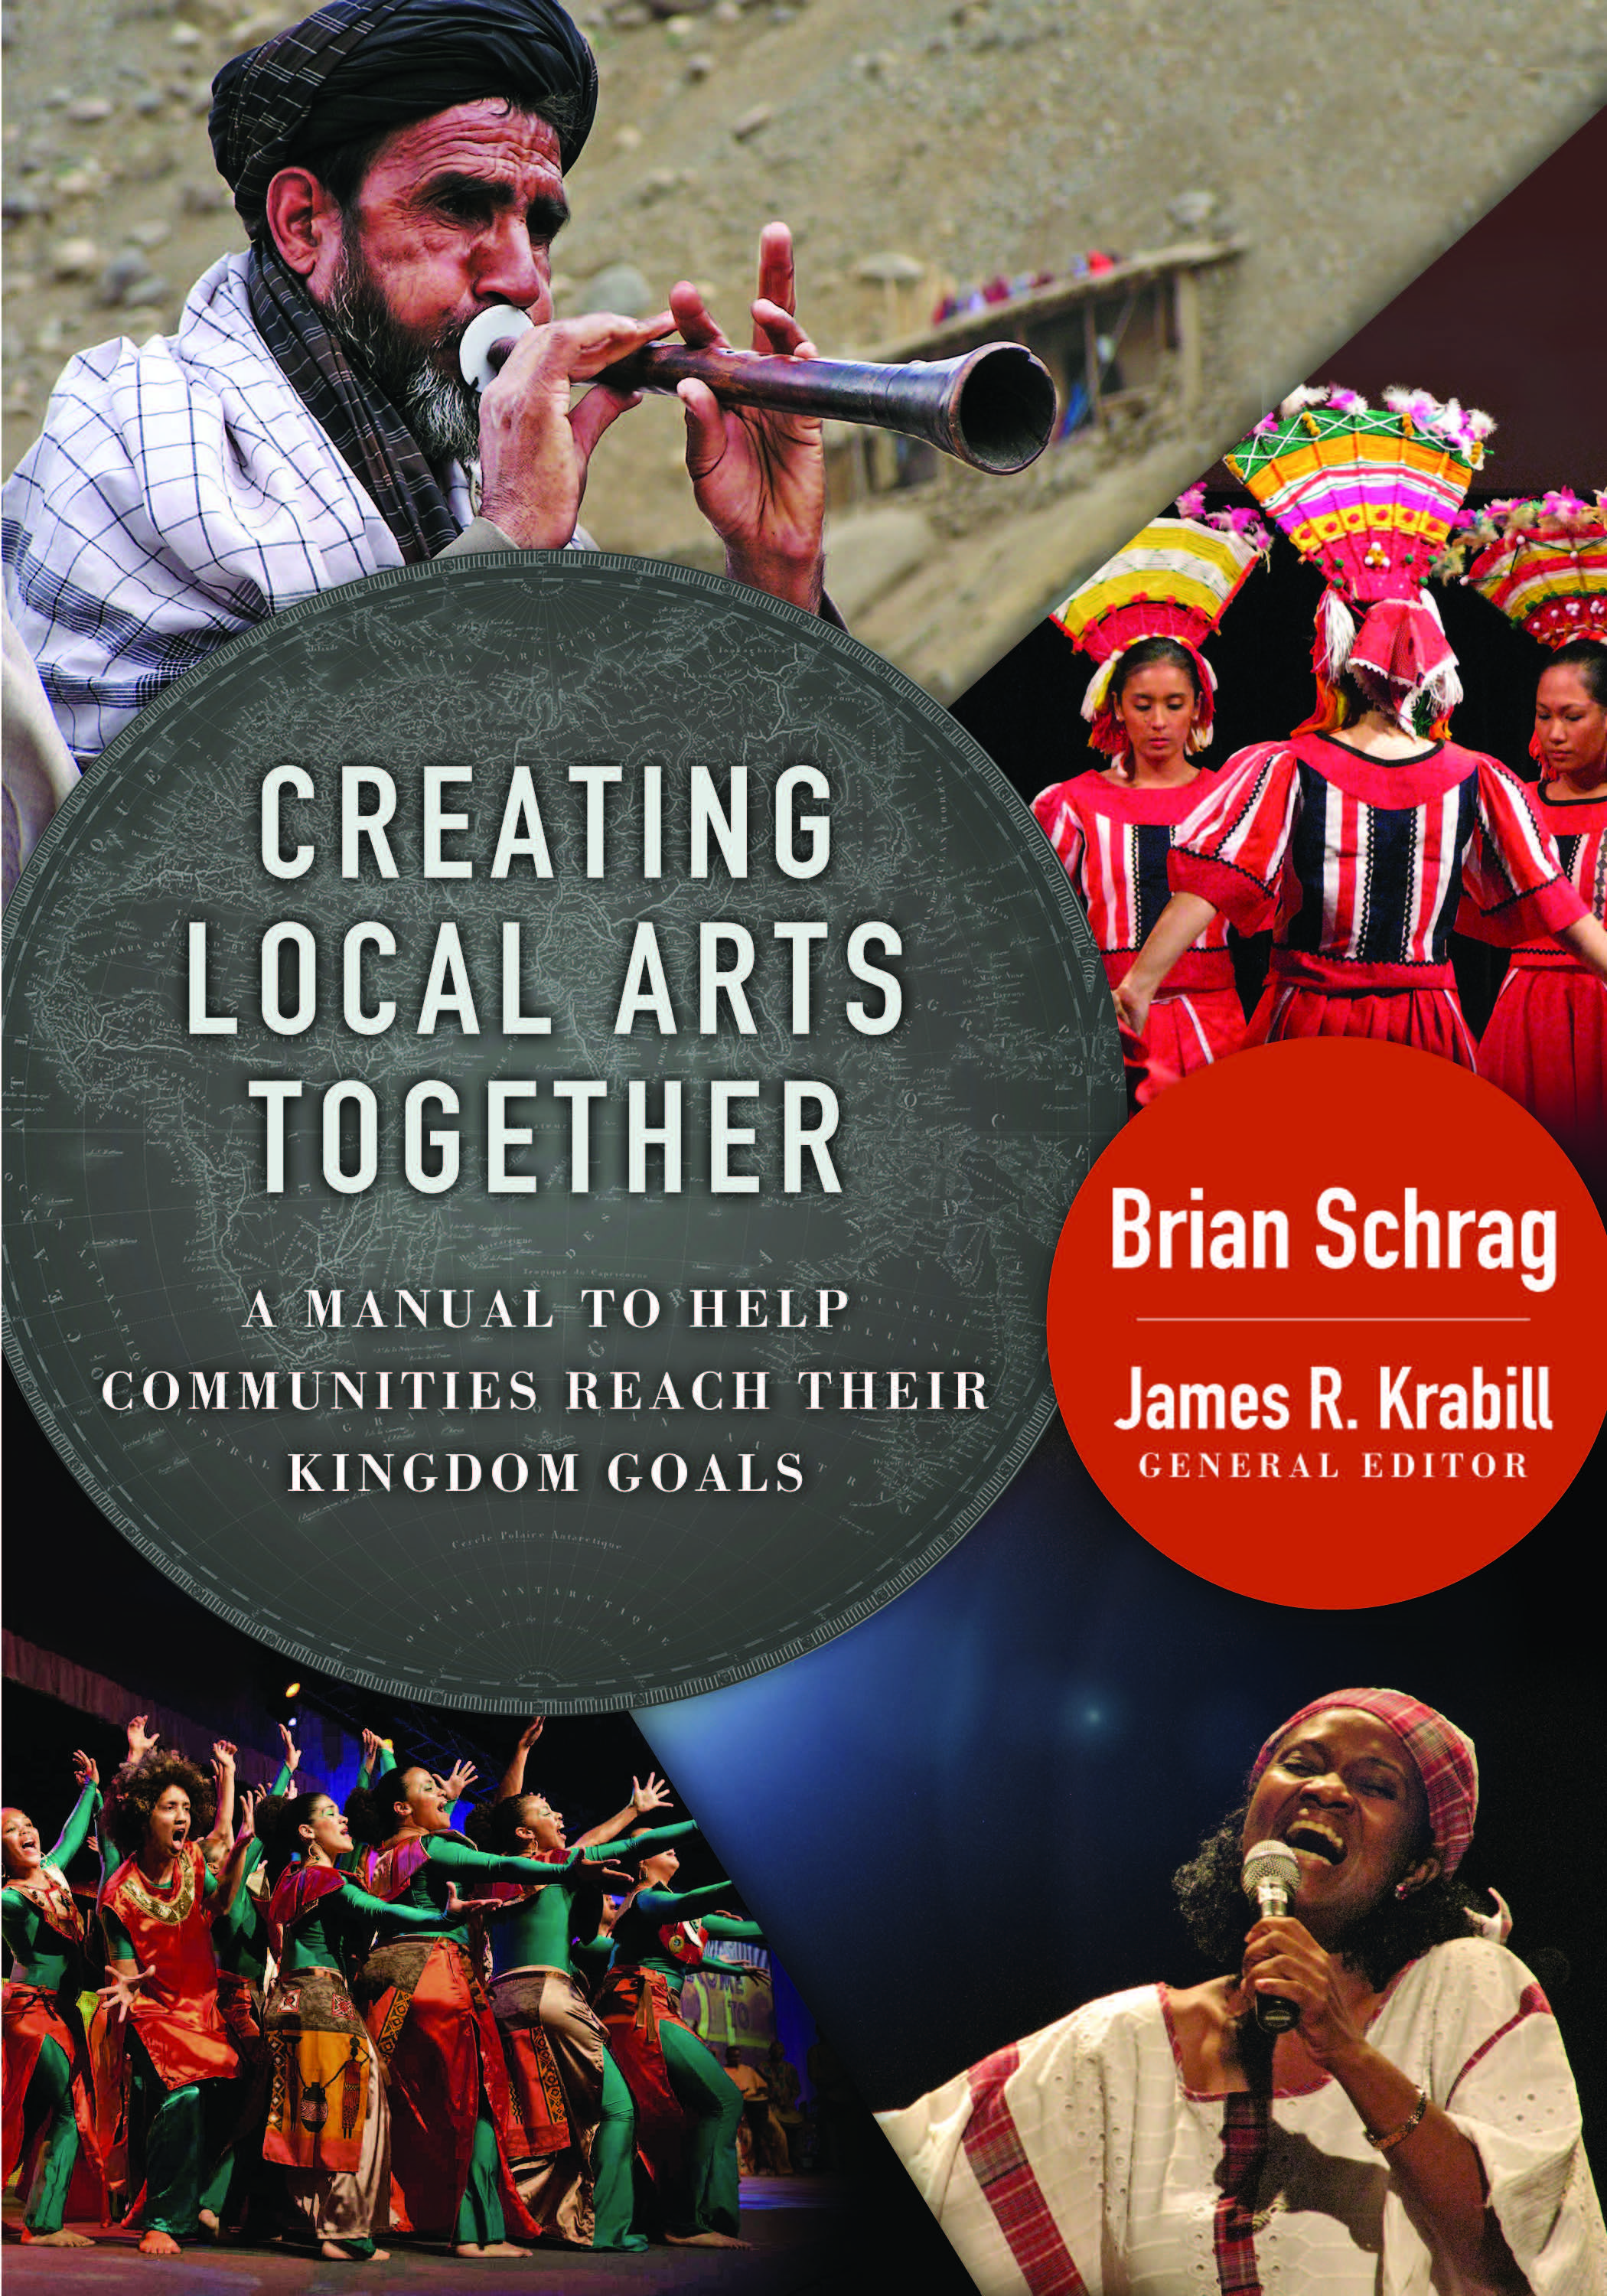 """REQUIRED: """"Creating Local Arts Together: A Manual to Help Communities Reach Their Kingdom Goals"""" by Dr. Brian Schrag (William Carey Library, 2013)"""